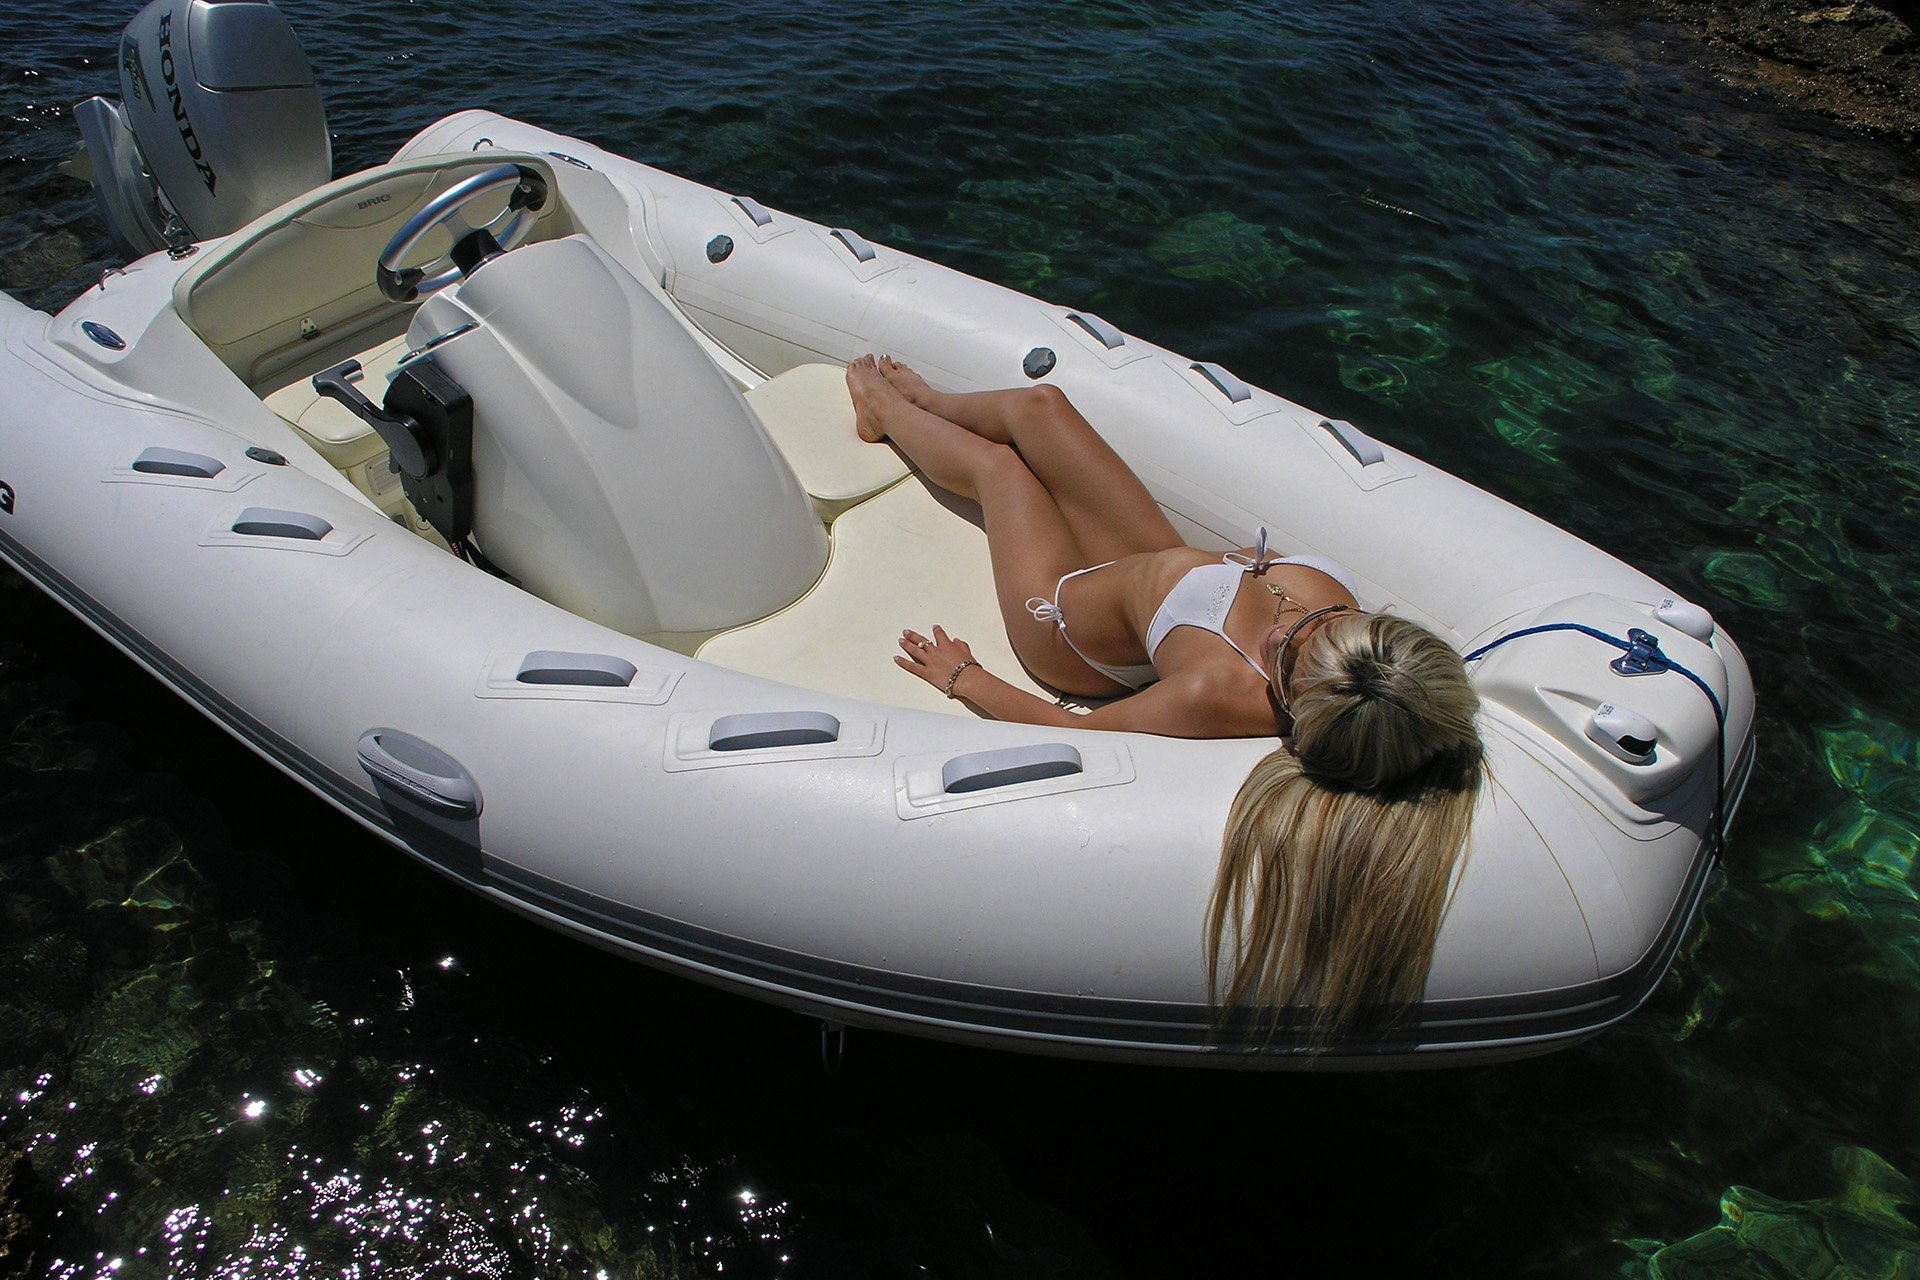 Eagle 380 Recreational RIB